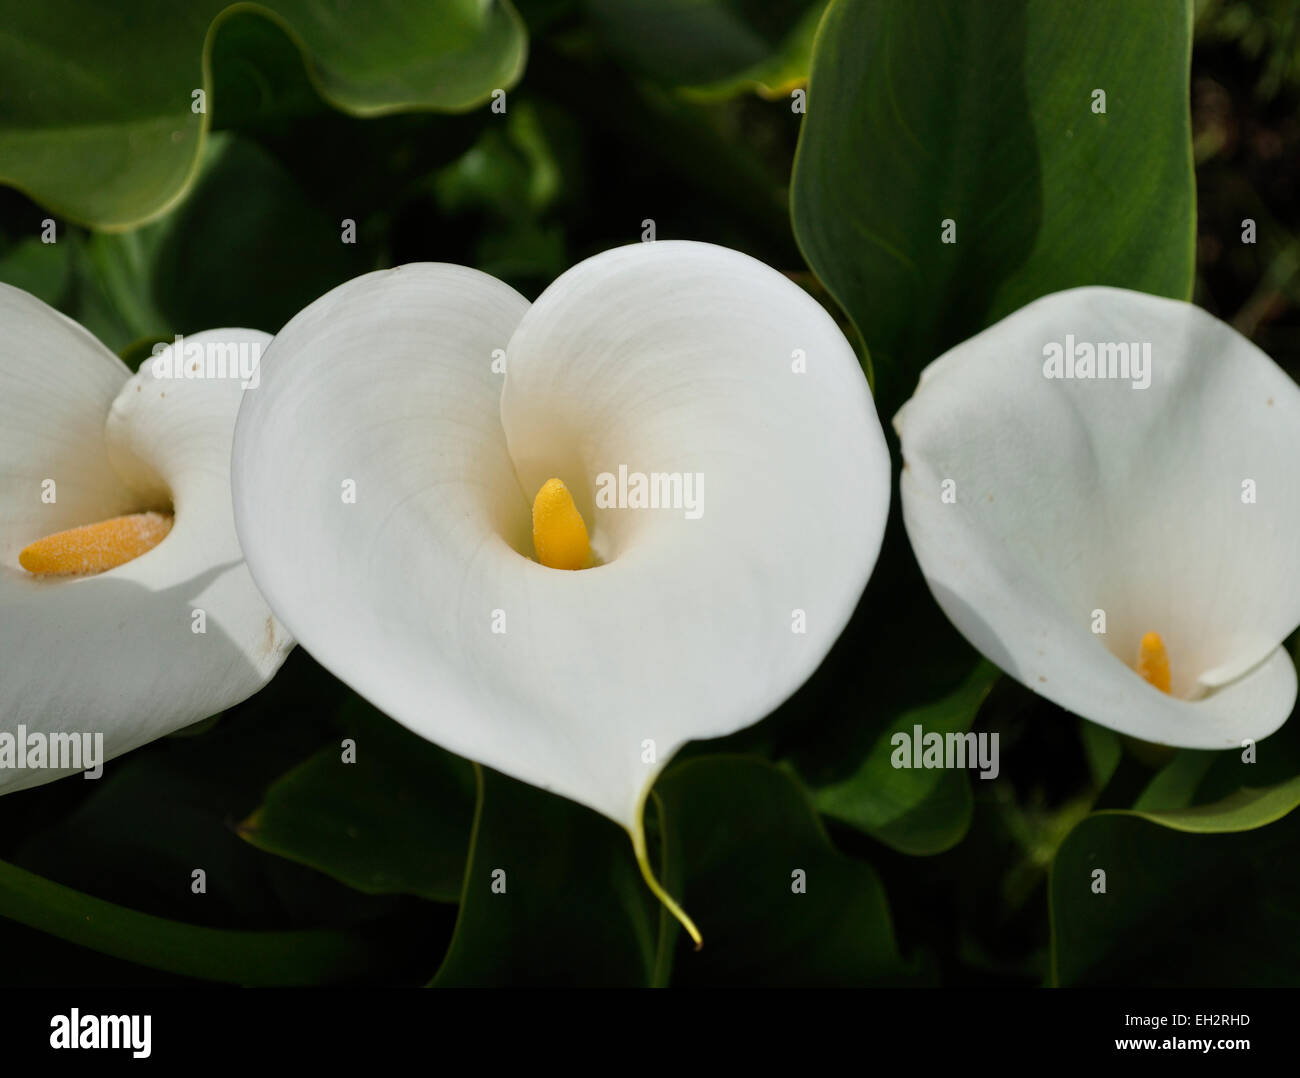 Heart White Calla Lily Flower Stock Photos Heart White Calla Lily